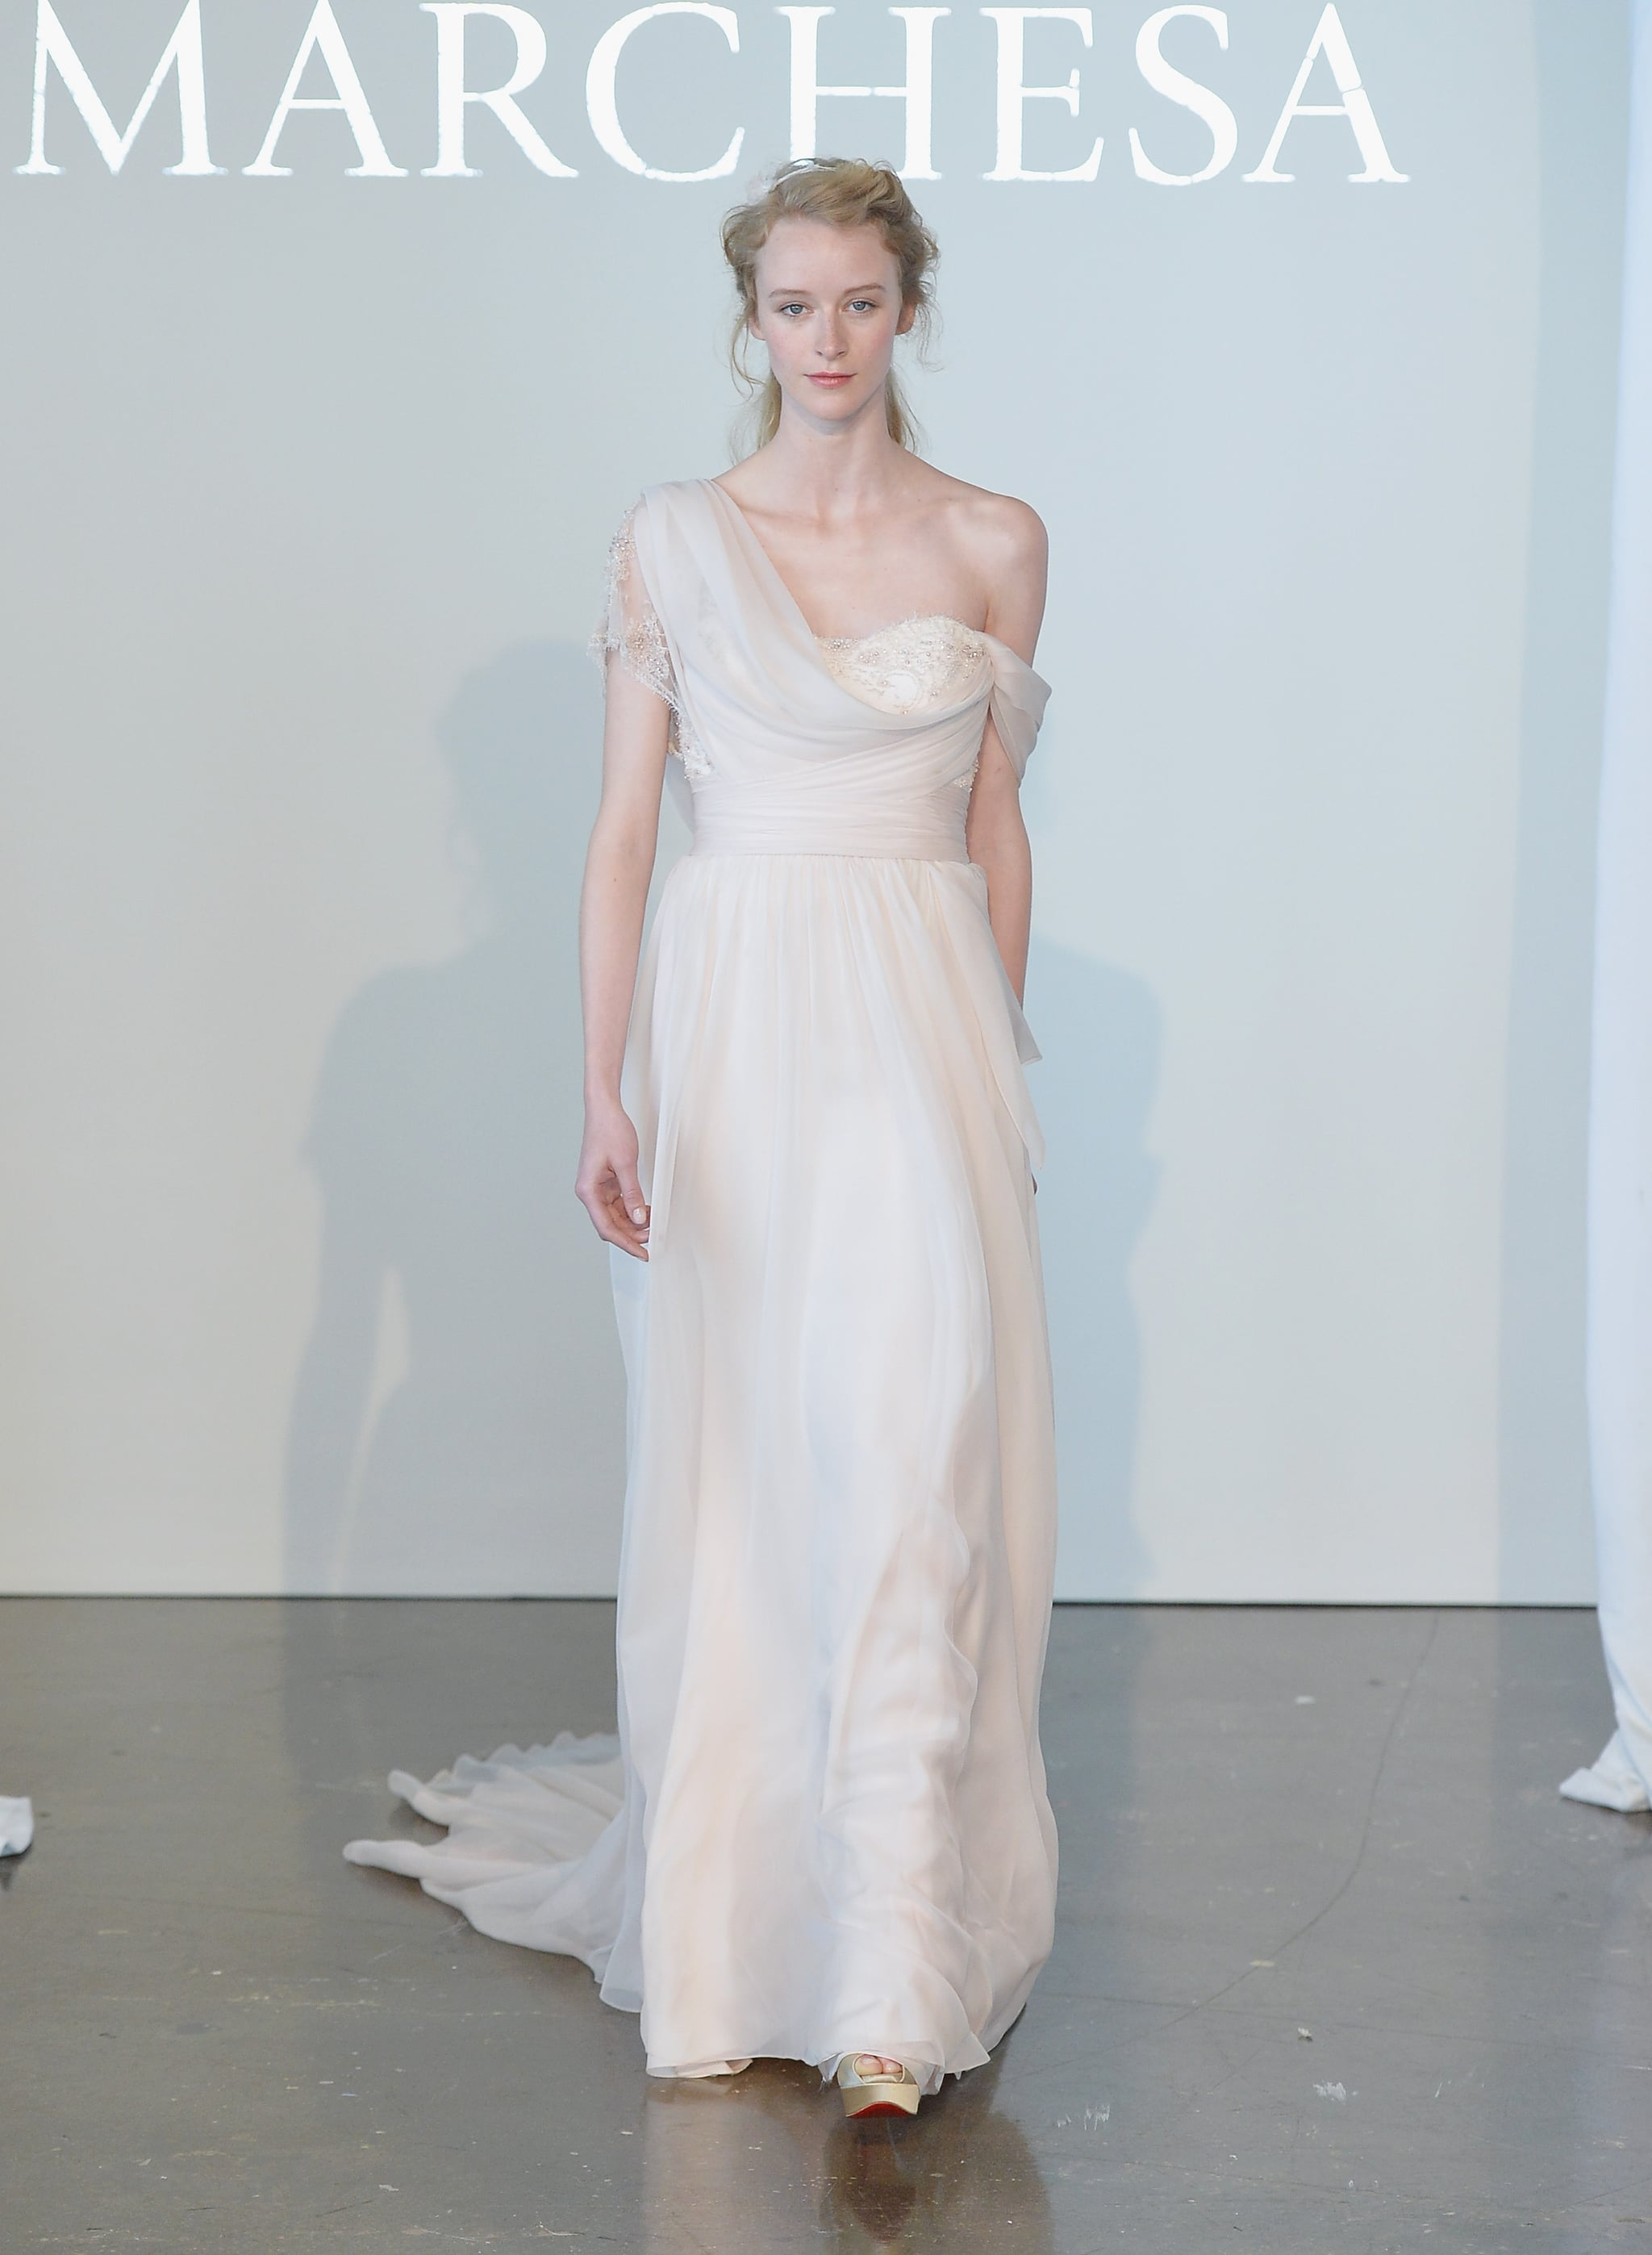 Marchesa Bridal Spring 2015